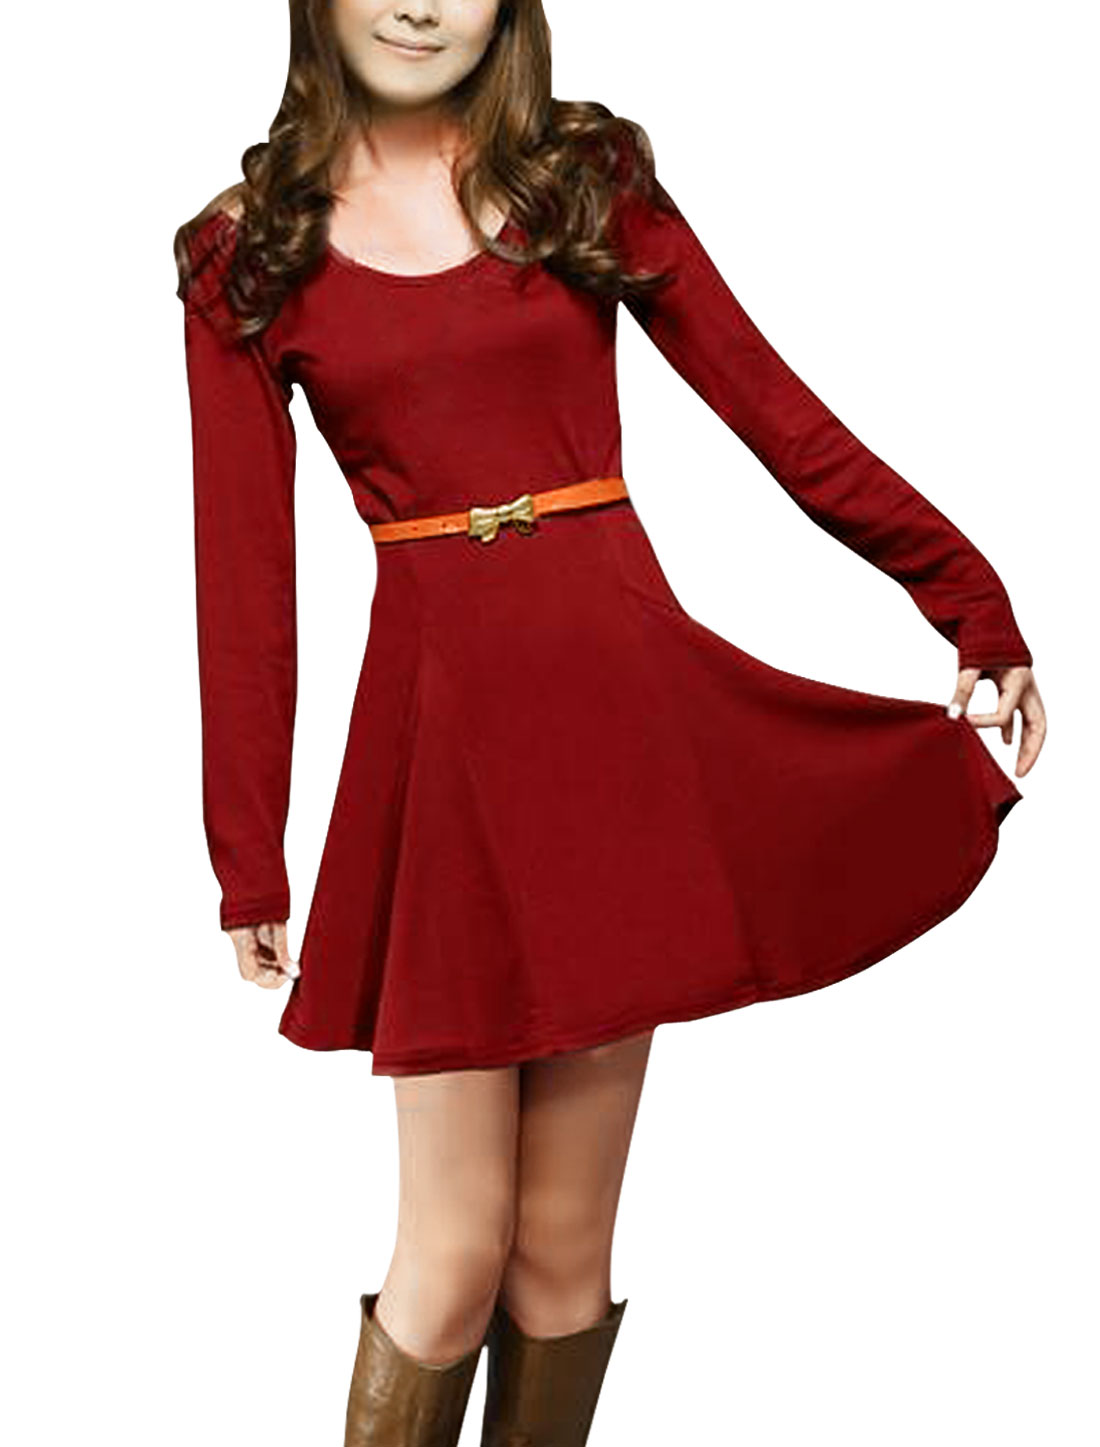 Lady Pullover Cozy Fit Scoop Neck Cut Out Shoulders Dress w Belt Burgundy L